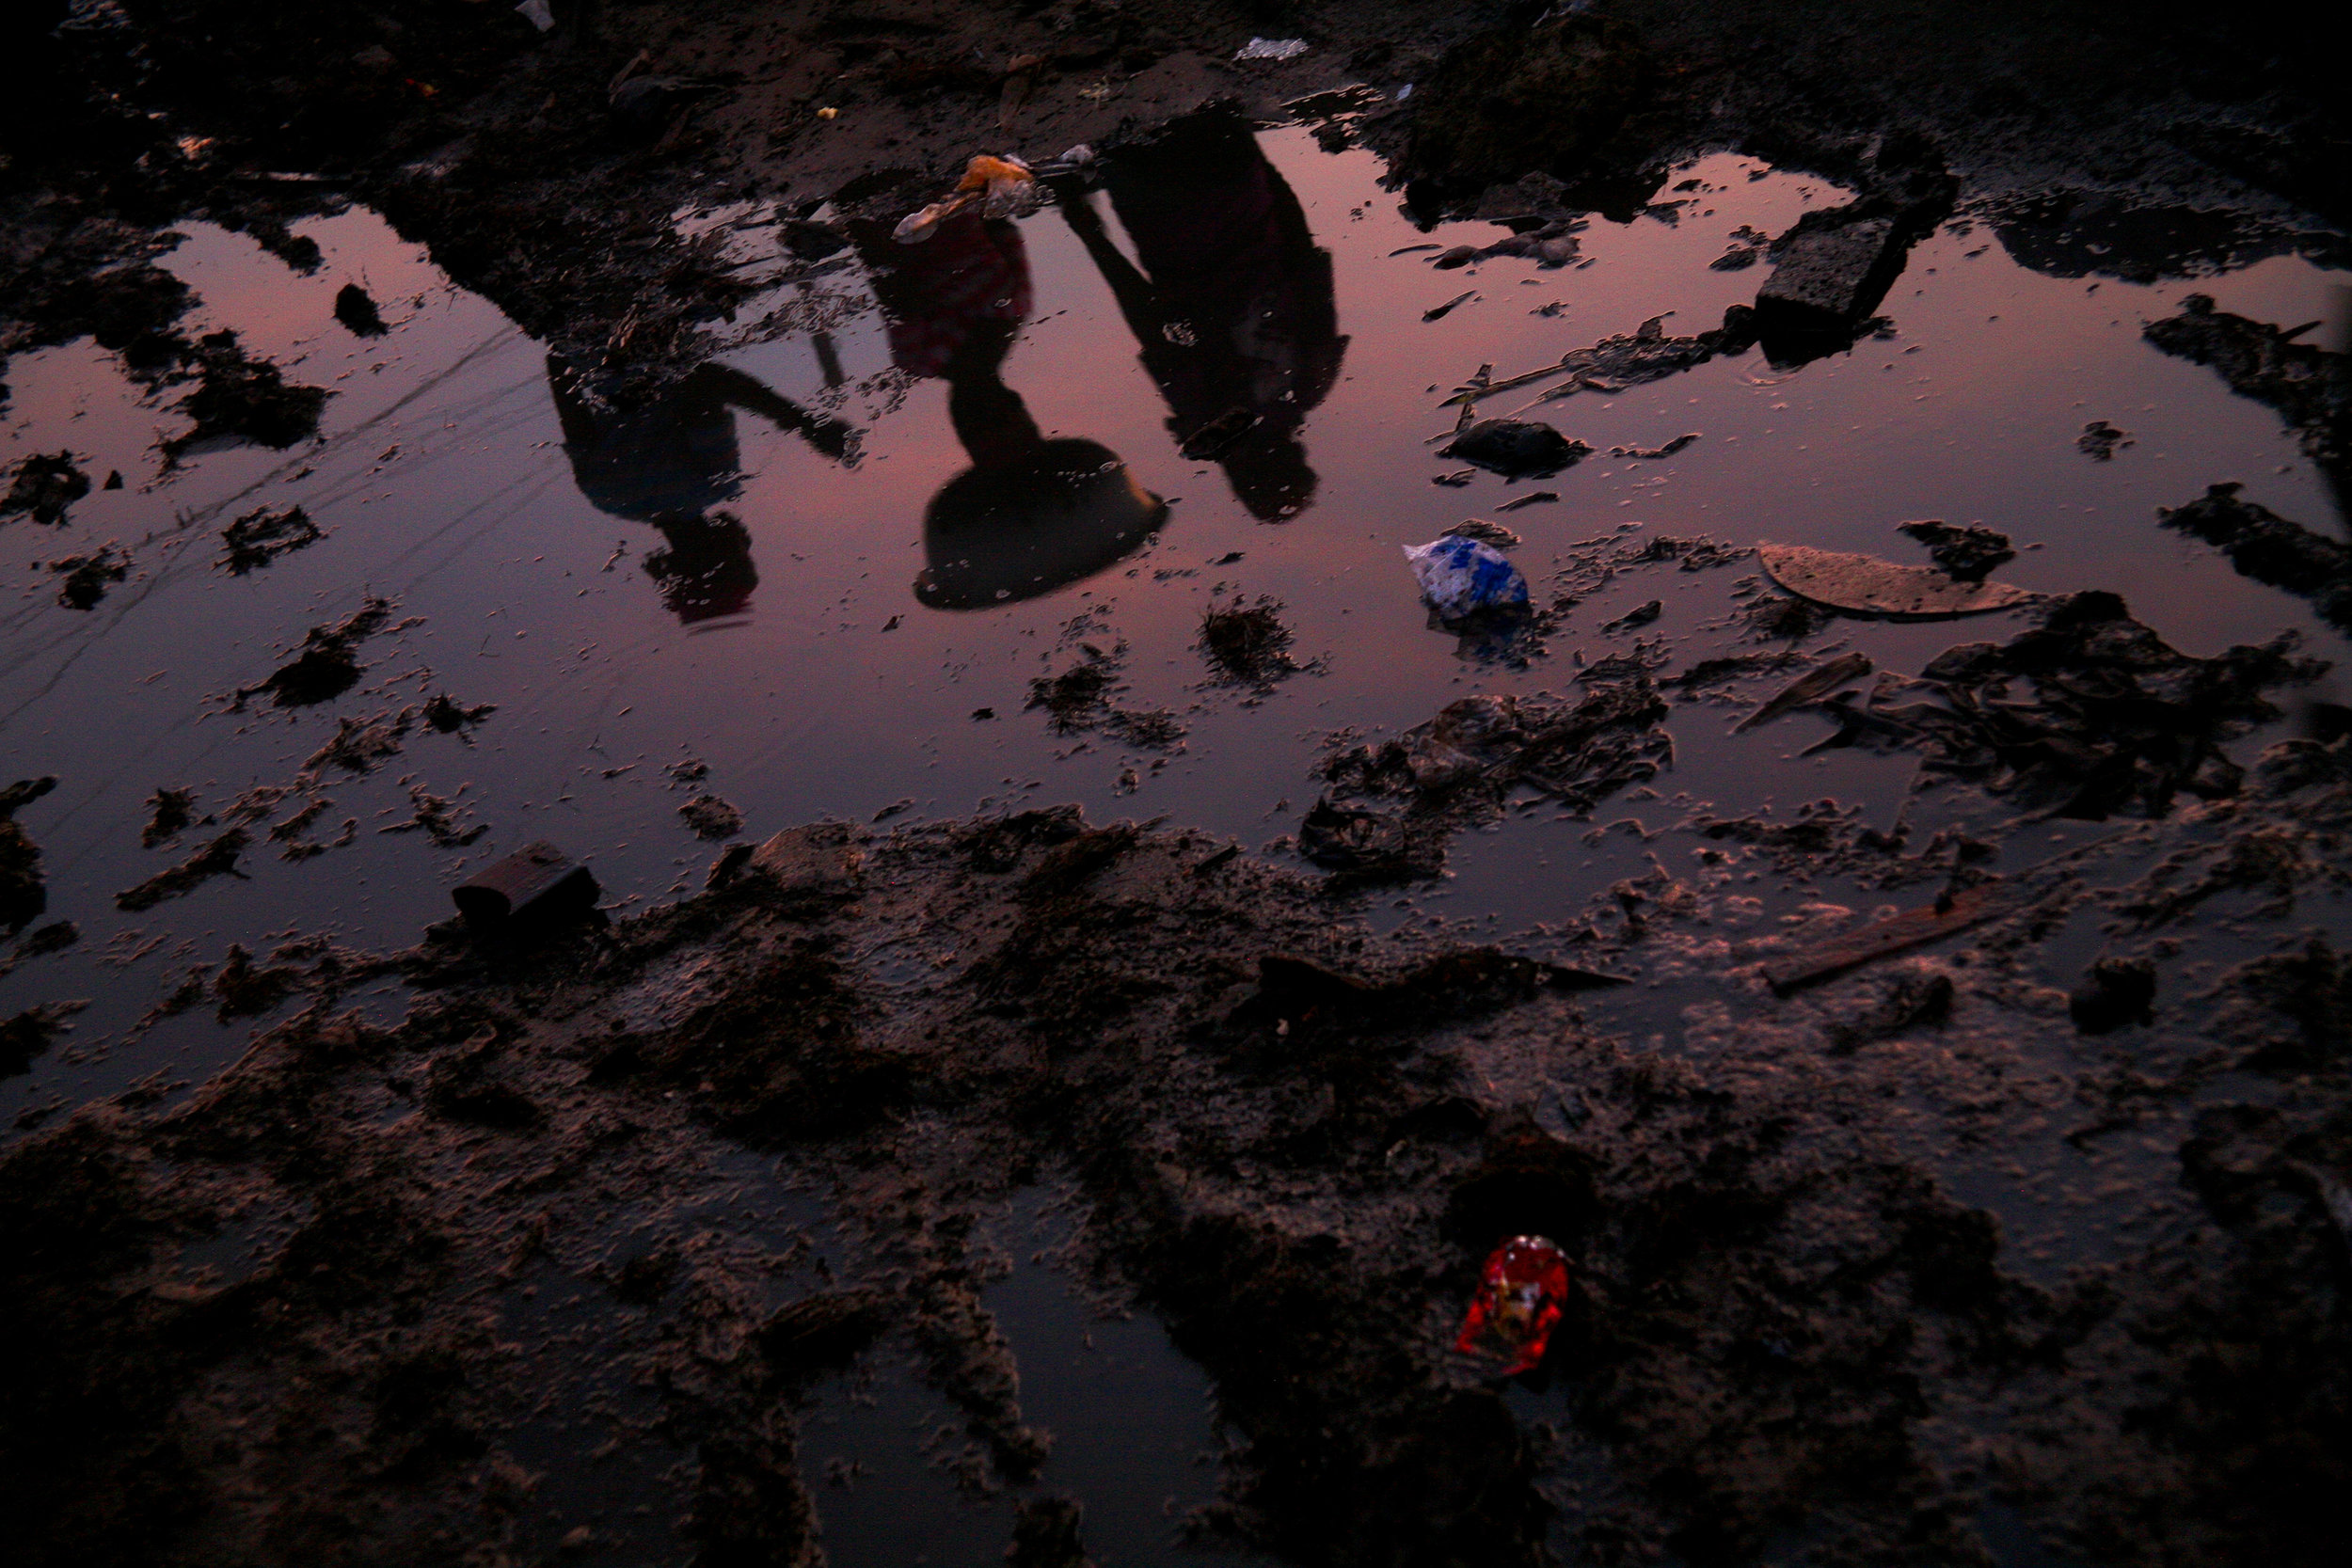 Kayayo girls reflected in the muddy pathways of the Old Fadama slum after a rainstorm in Accra, Ghana on April 14, 2009. The area has become a haven for northerners in the capital city, and each northern tribe has a small neighborhood of shacks and semi-permanent buildings.